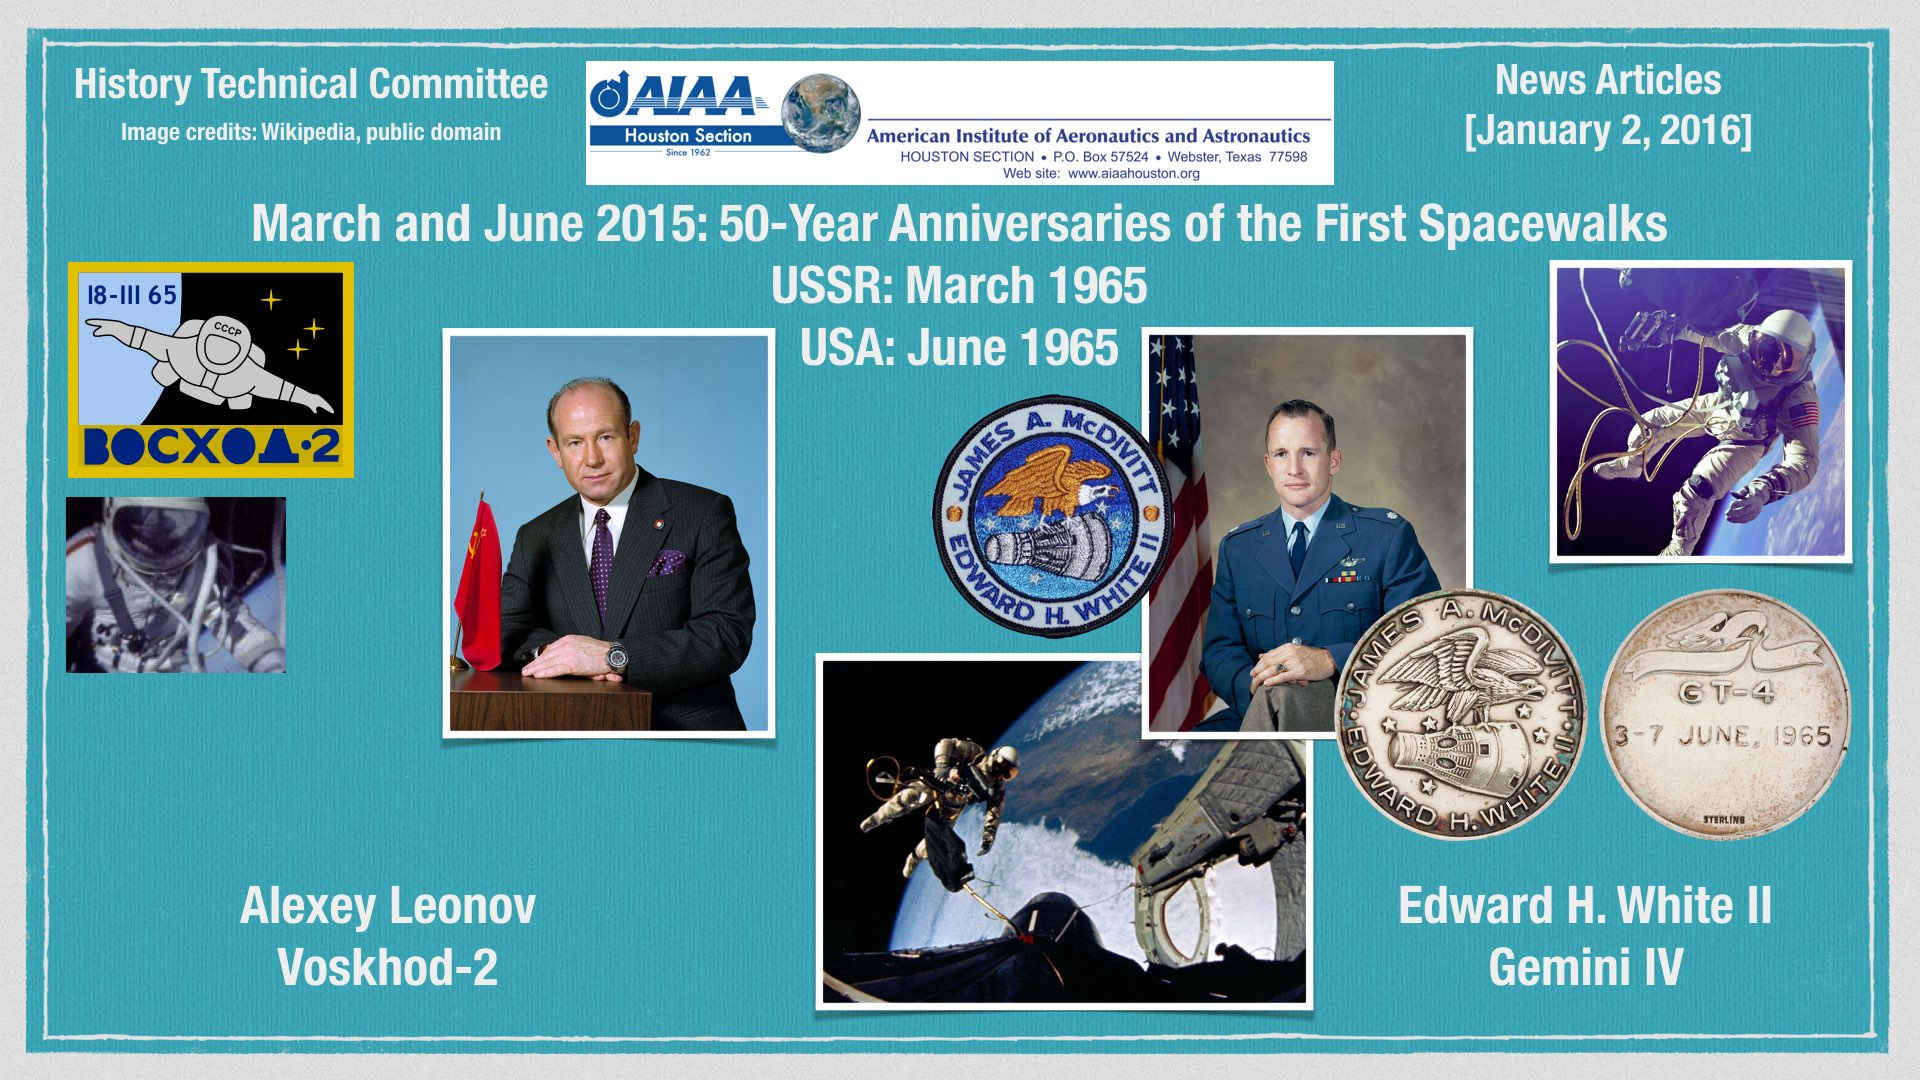 Above: March and June 2015: The 50-Year Anniversary of the First Spacewalks. (Click to zoom.) Image credits: Wikipedia (public domain).